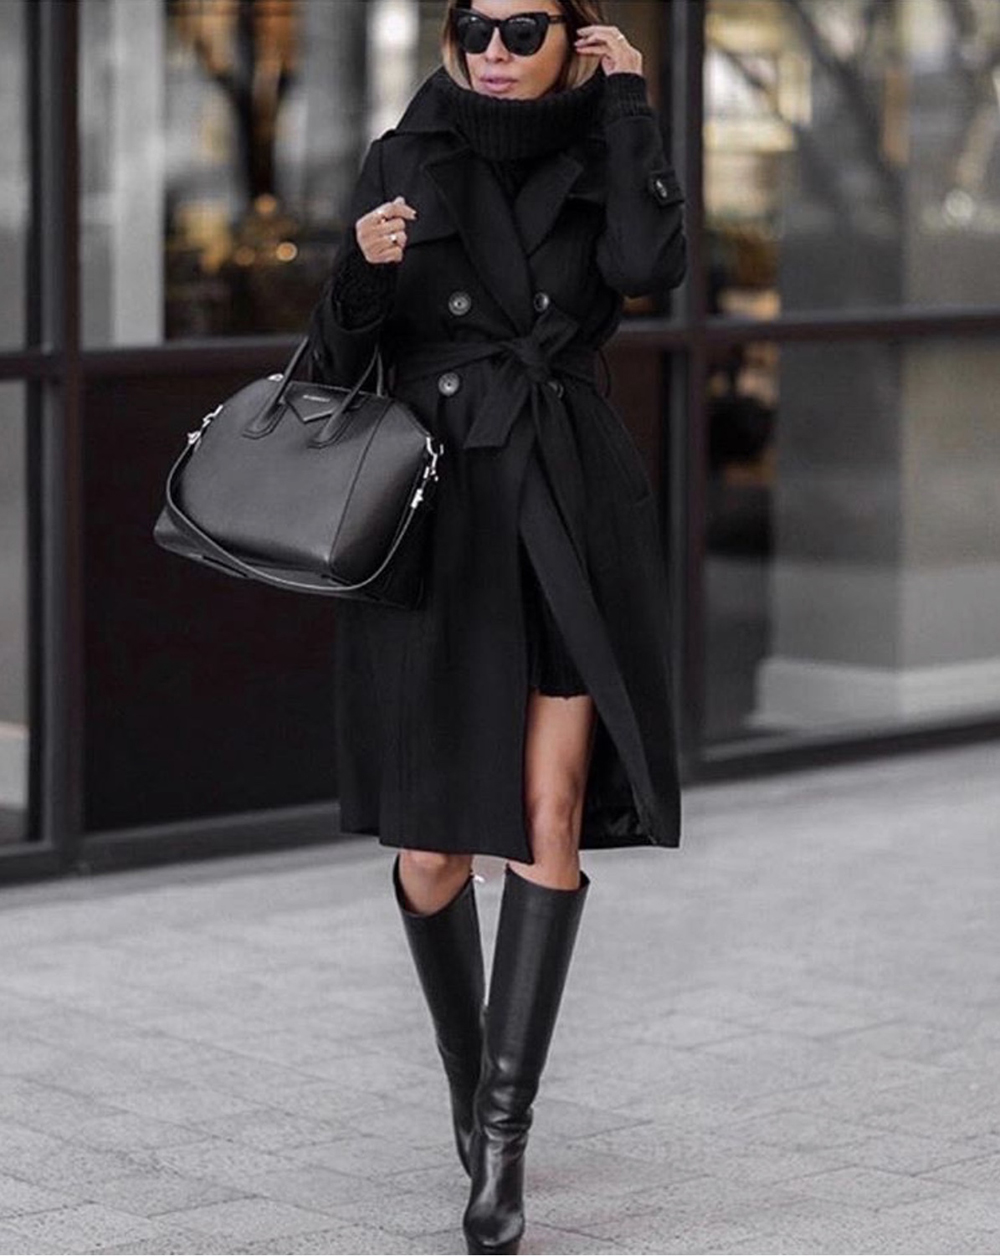 How to Dress Up An All Black Outfit, chic all black outfit, layered black outfit, sweater dress and boots, fall outfit | lolario style